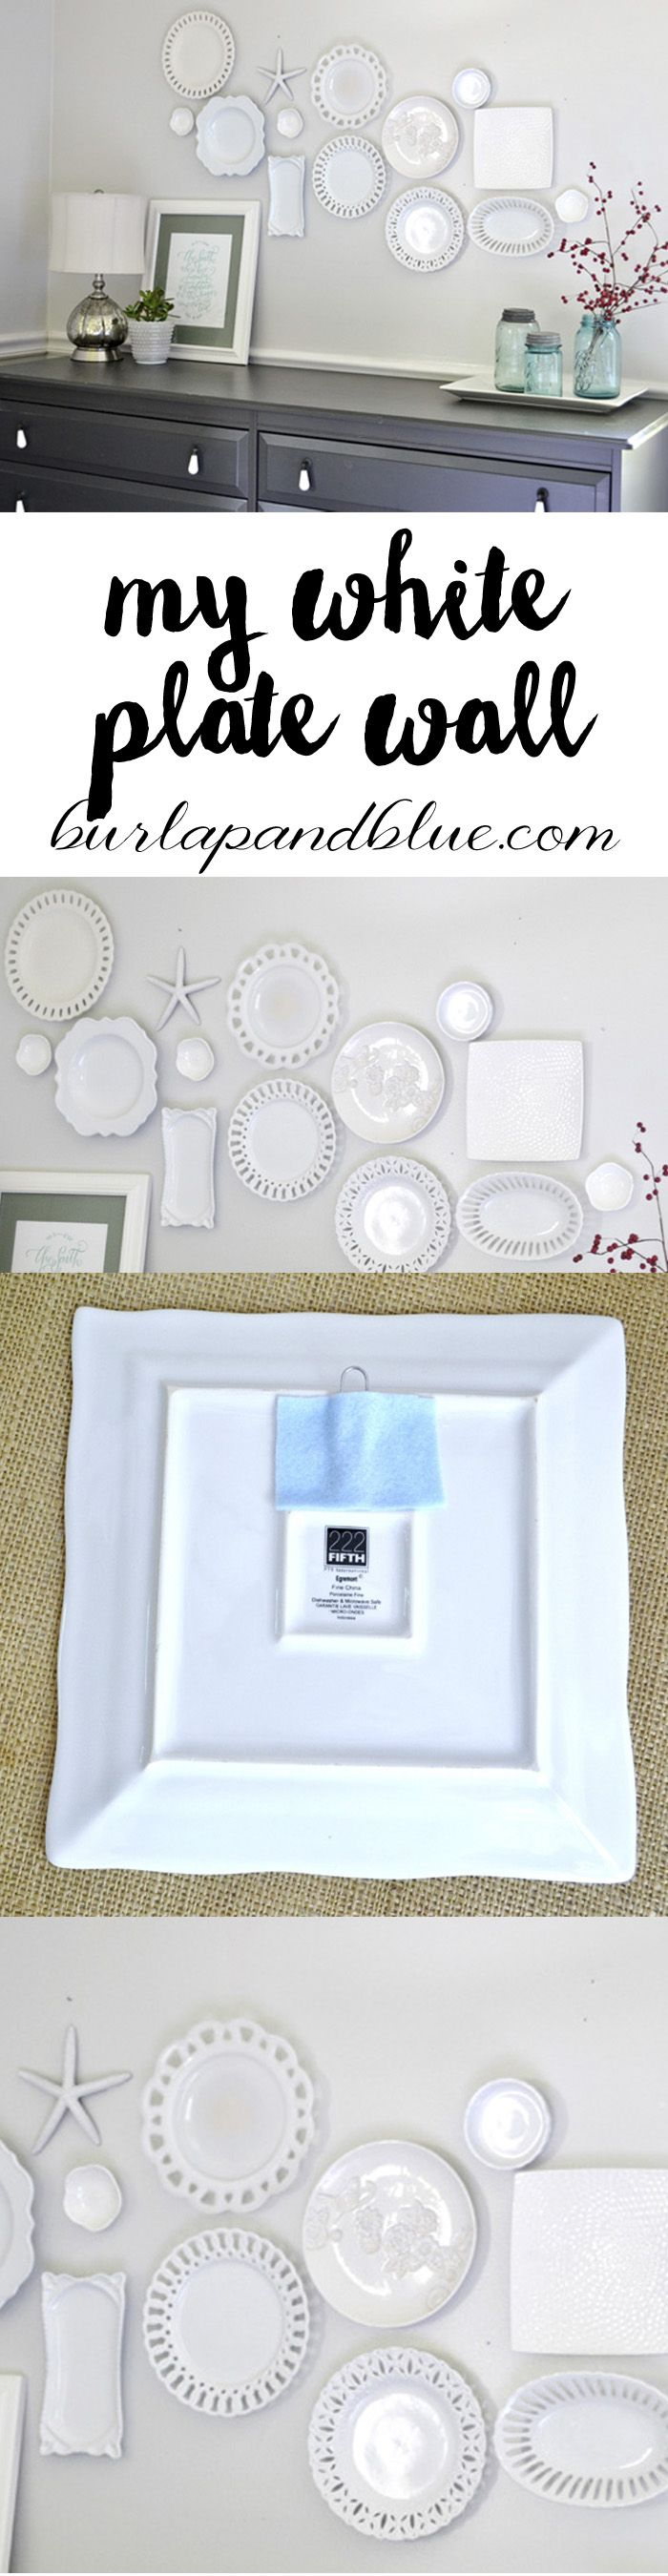 Best 25 hanging plates ideas on pinterest plate hangers plates my white plate wall plus the cheaters way of hanging plates platewall whiteplates amipublicfo Image collections